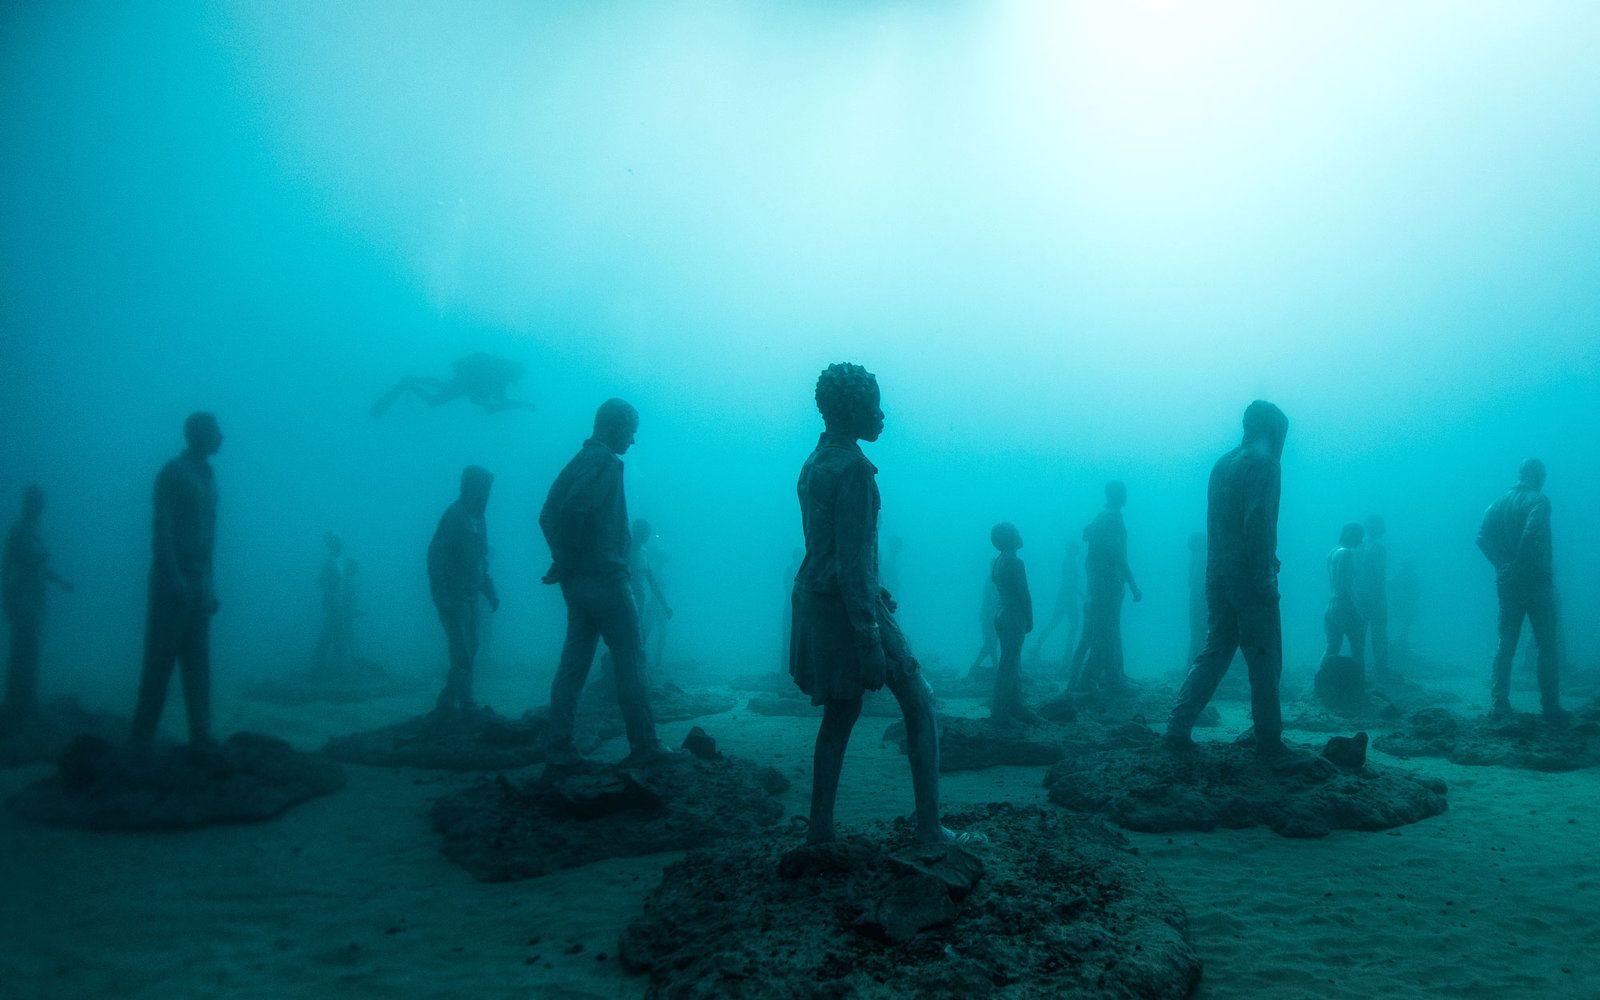 European Underwater Art Museum